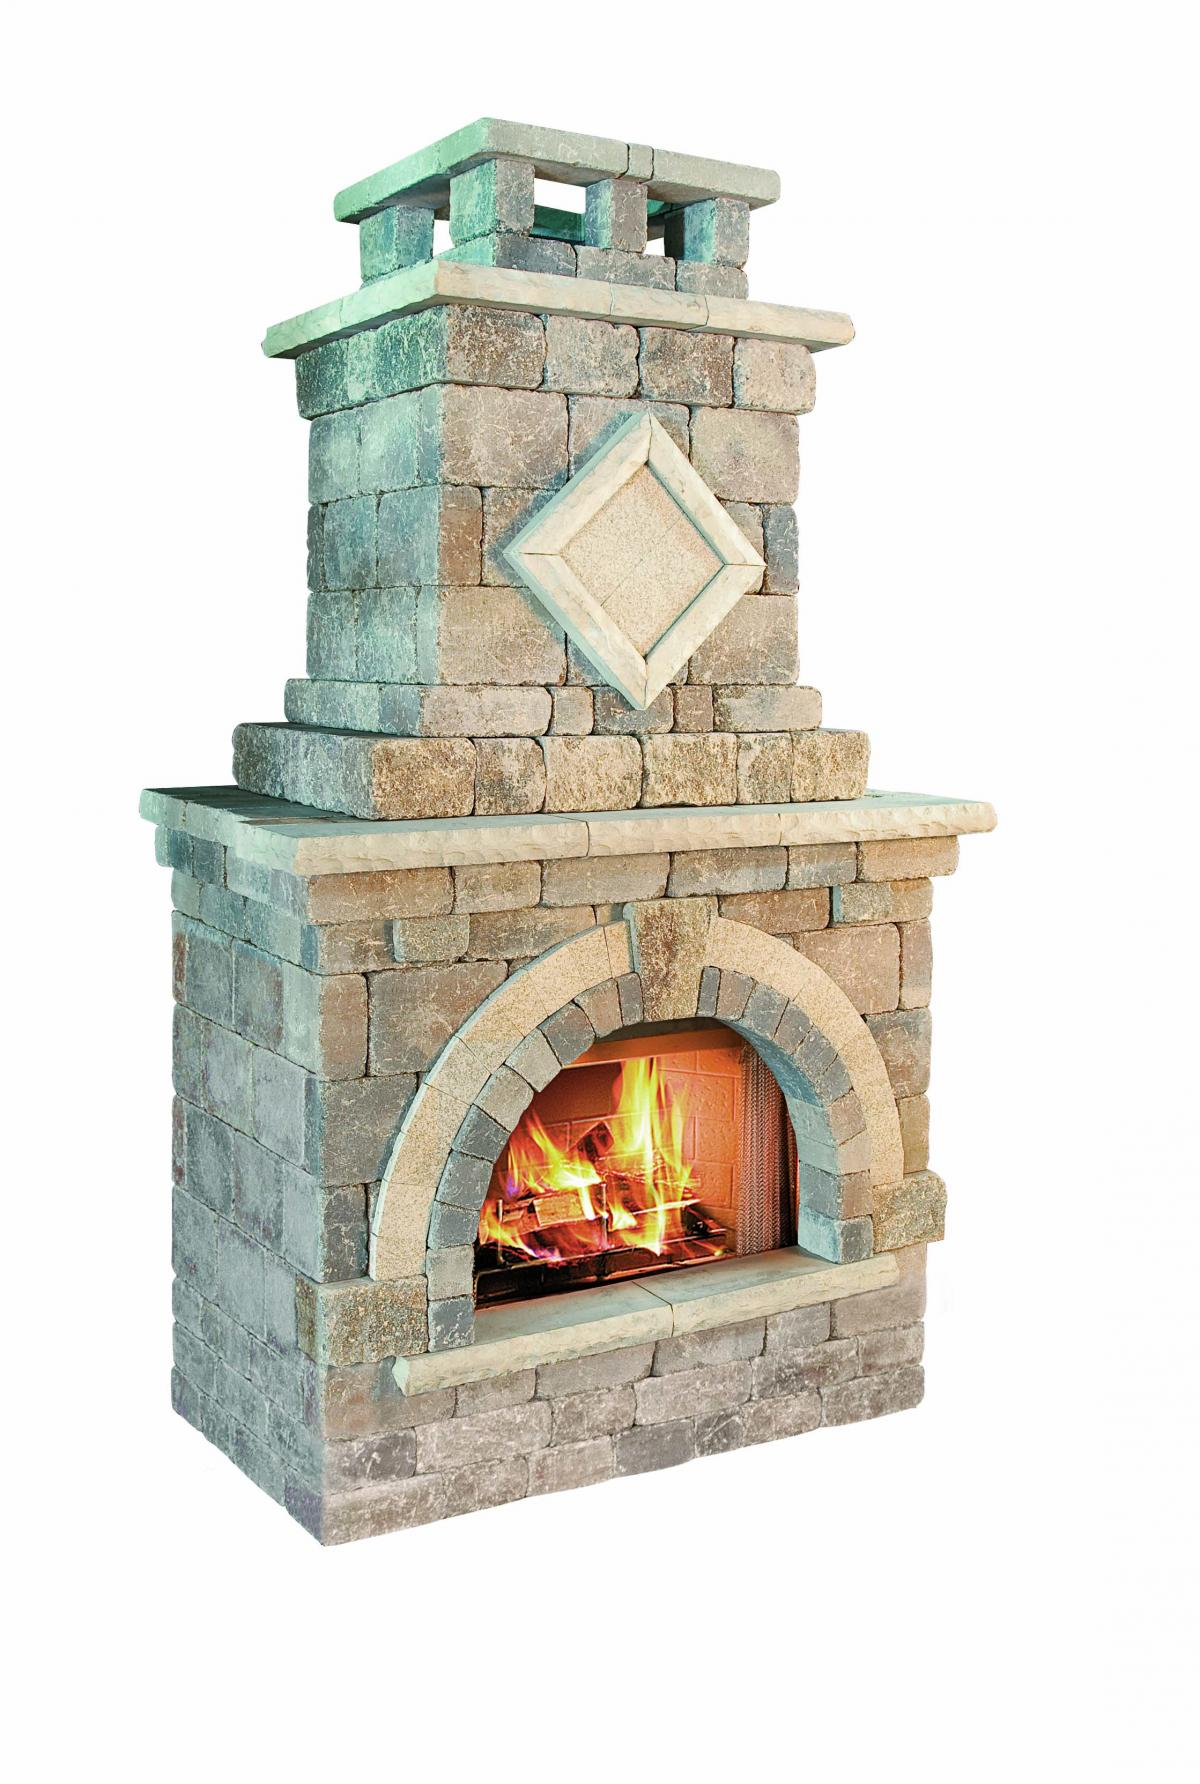 Small outdoor fireplace kits pictures to pin on pinterest for Porch fireplace kit